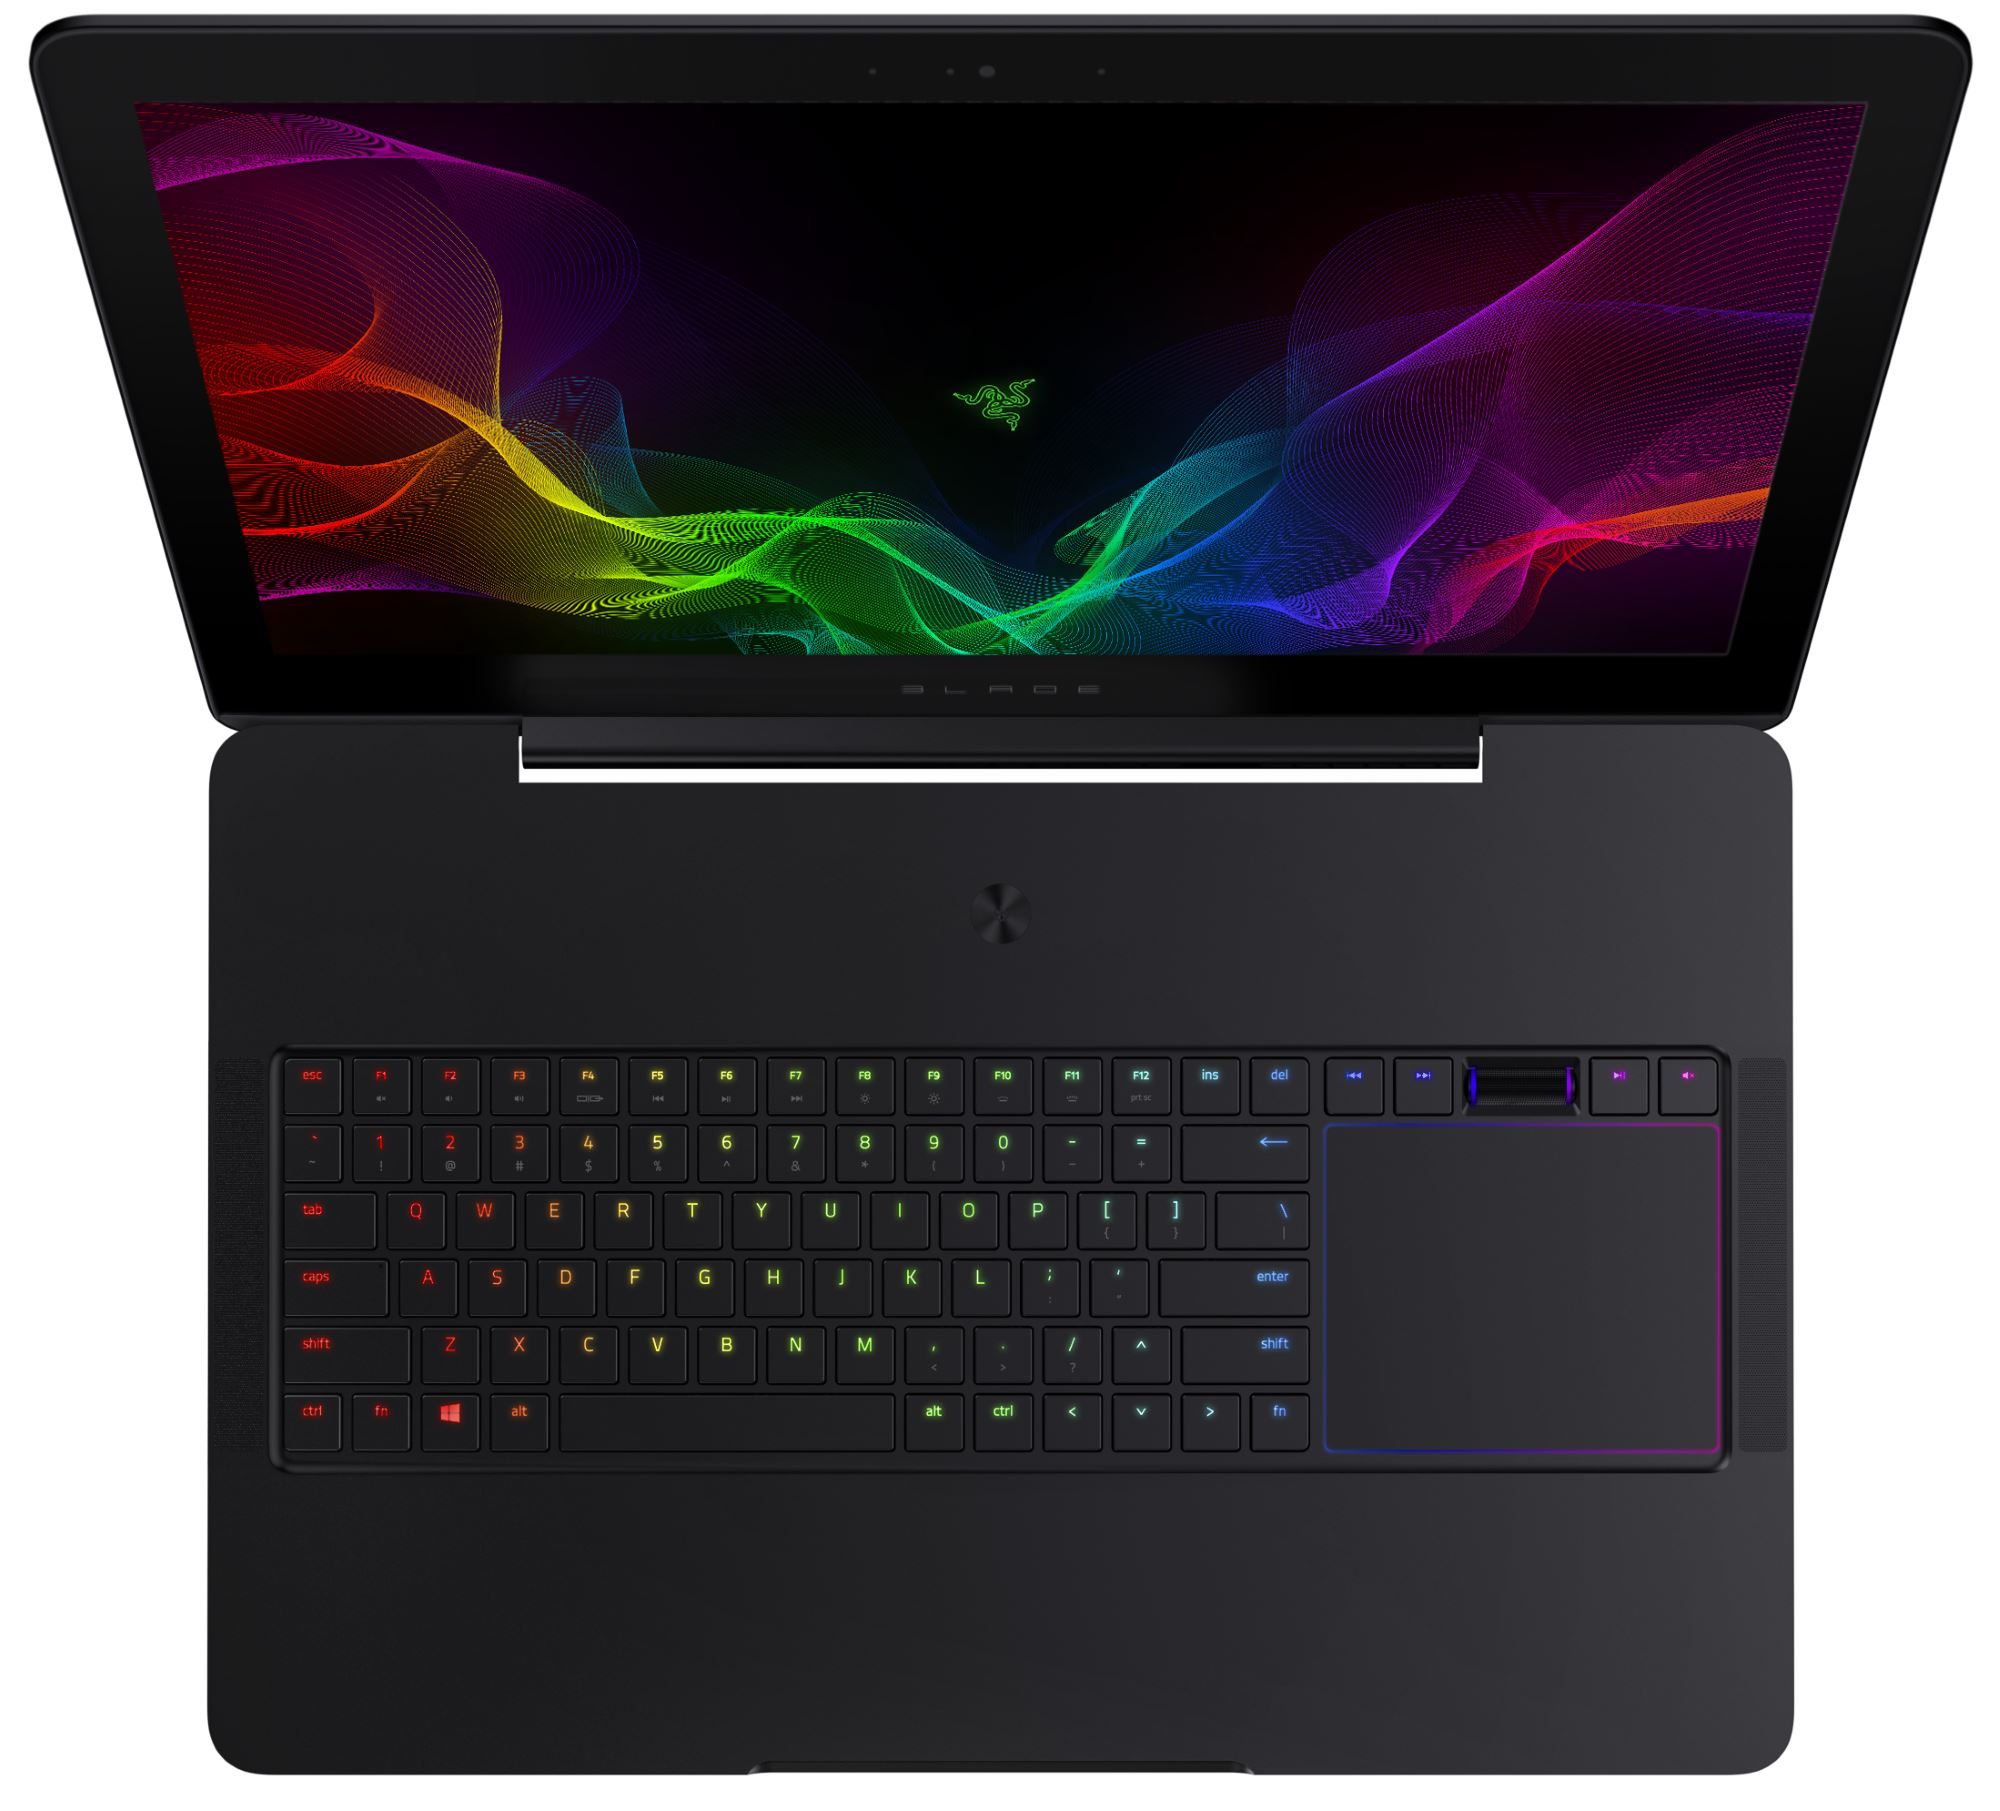 Razer Reveals New Blade Pro Gtx 1060 Graphics Full Hd Lower Price Point